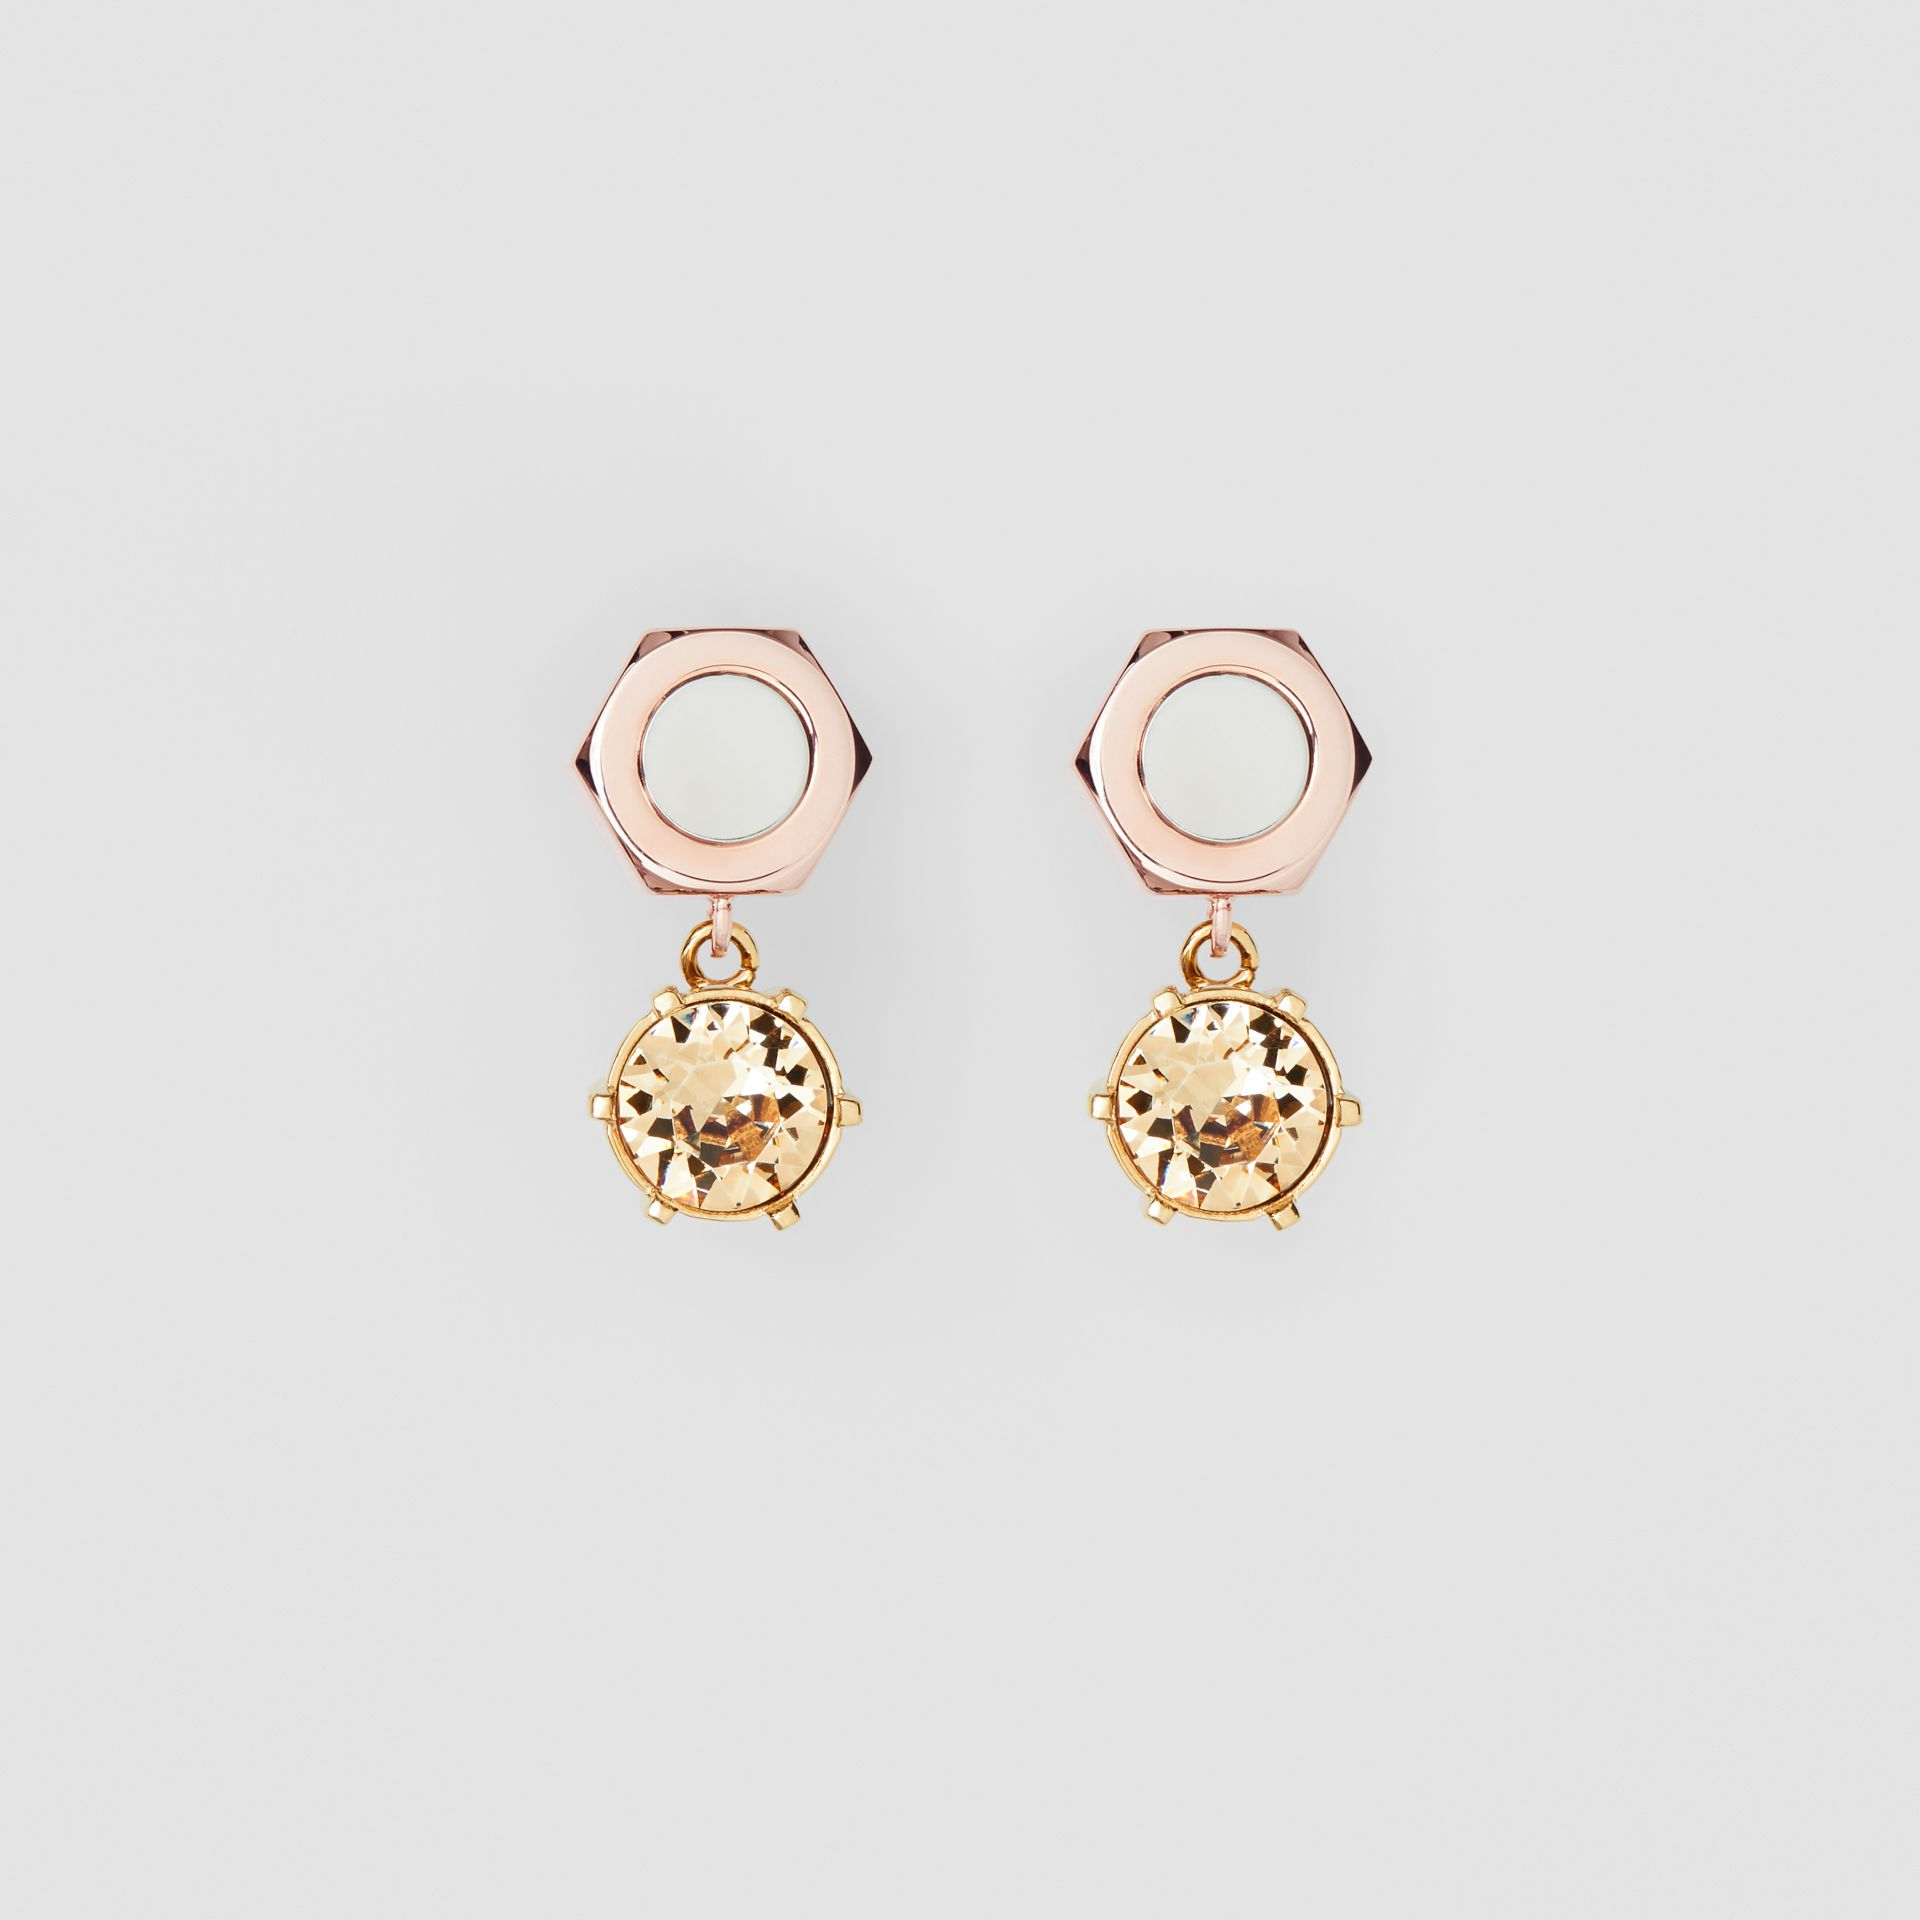 Crystal Charm Rose Gold-plated Nut and Bolt Earrings in Gold/palladium - Women | Burberry - gallery image 0